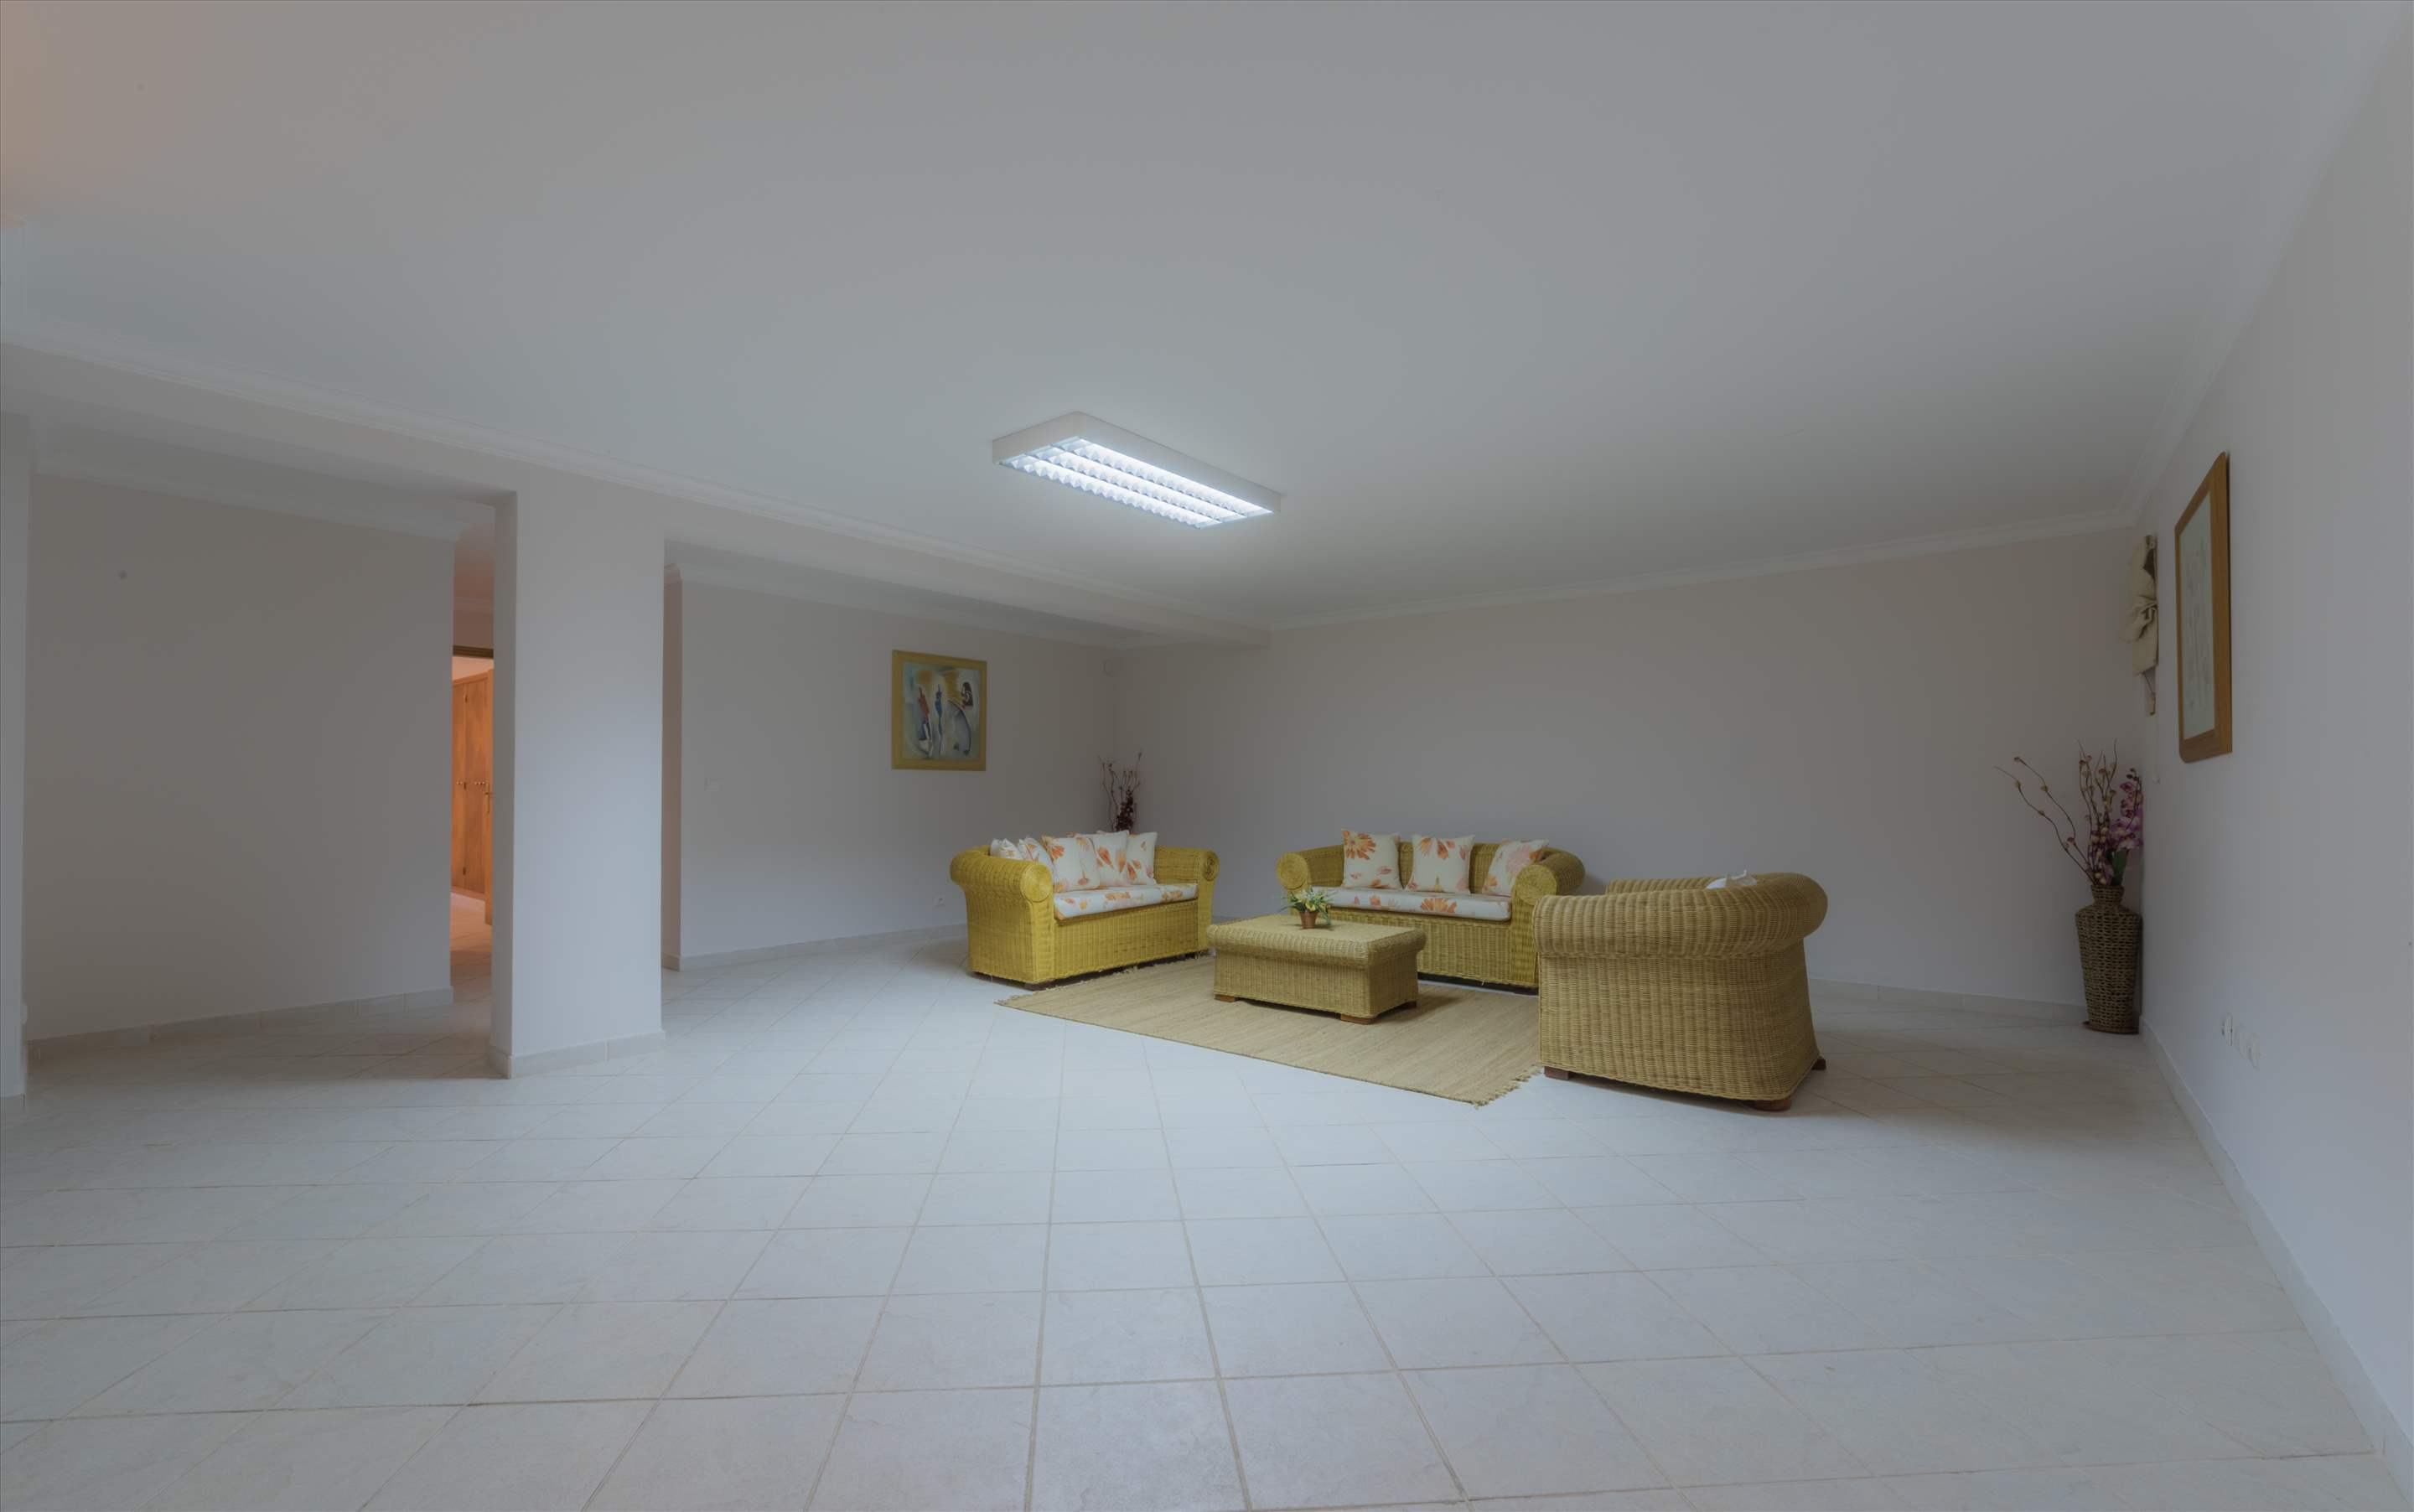 Villa 29, 4 bedroom villa in Vale do Lobo, Algarve Photo #7